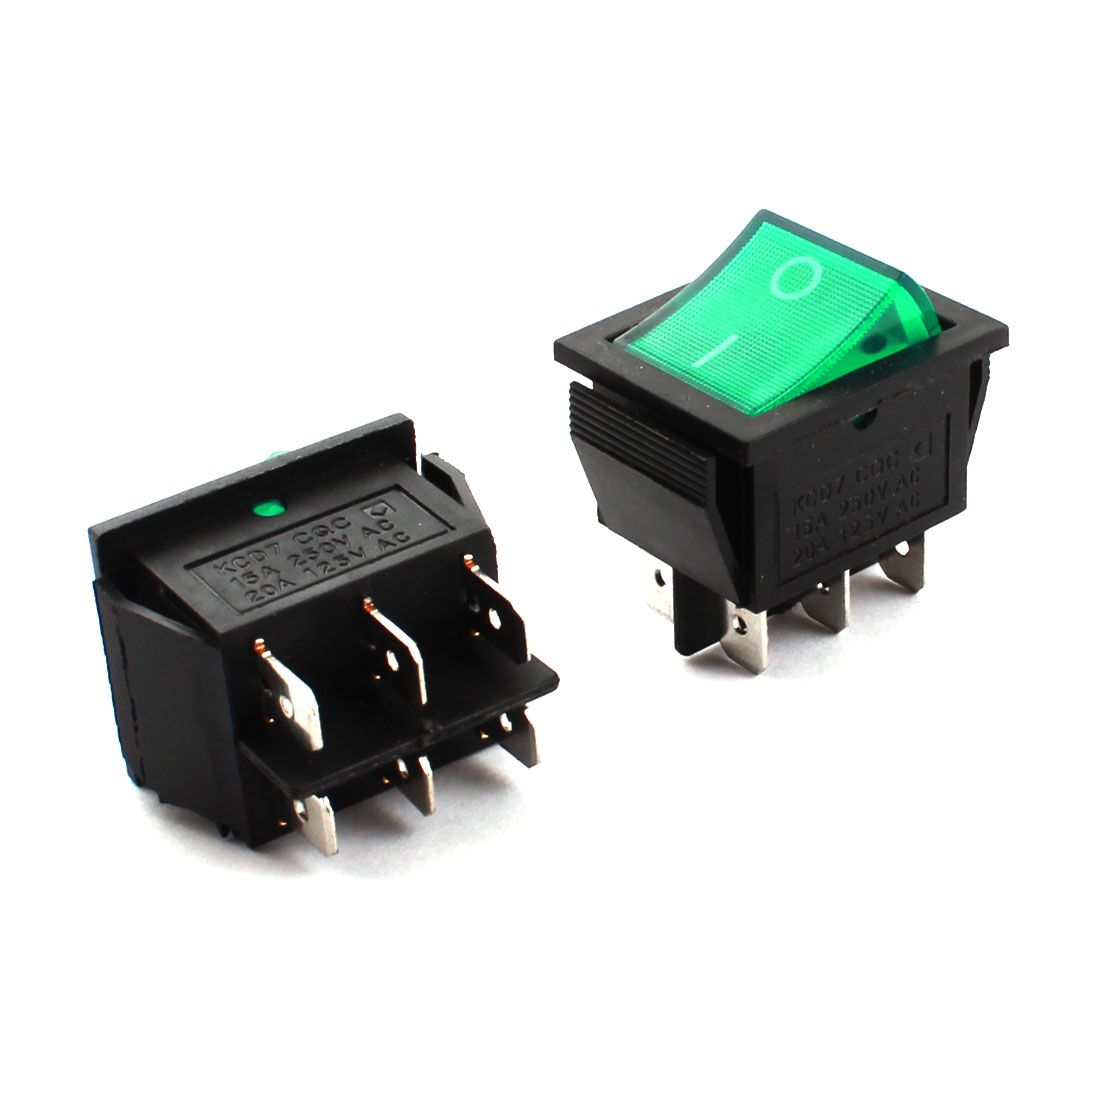 2 Pcs AC 250V/125V 15A/20A DPDT 6-Pin ON-OFF Snap in Mounting Green Button Boat Rocker Switch